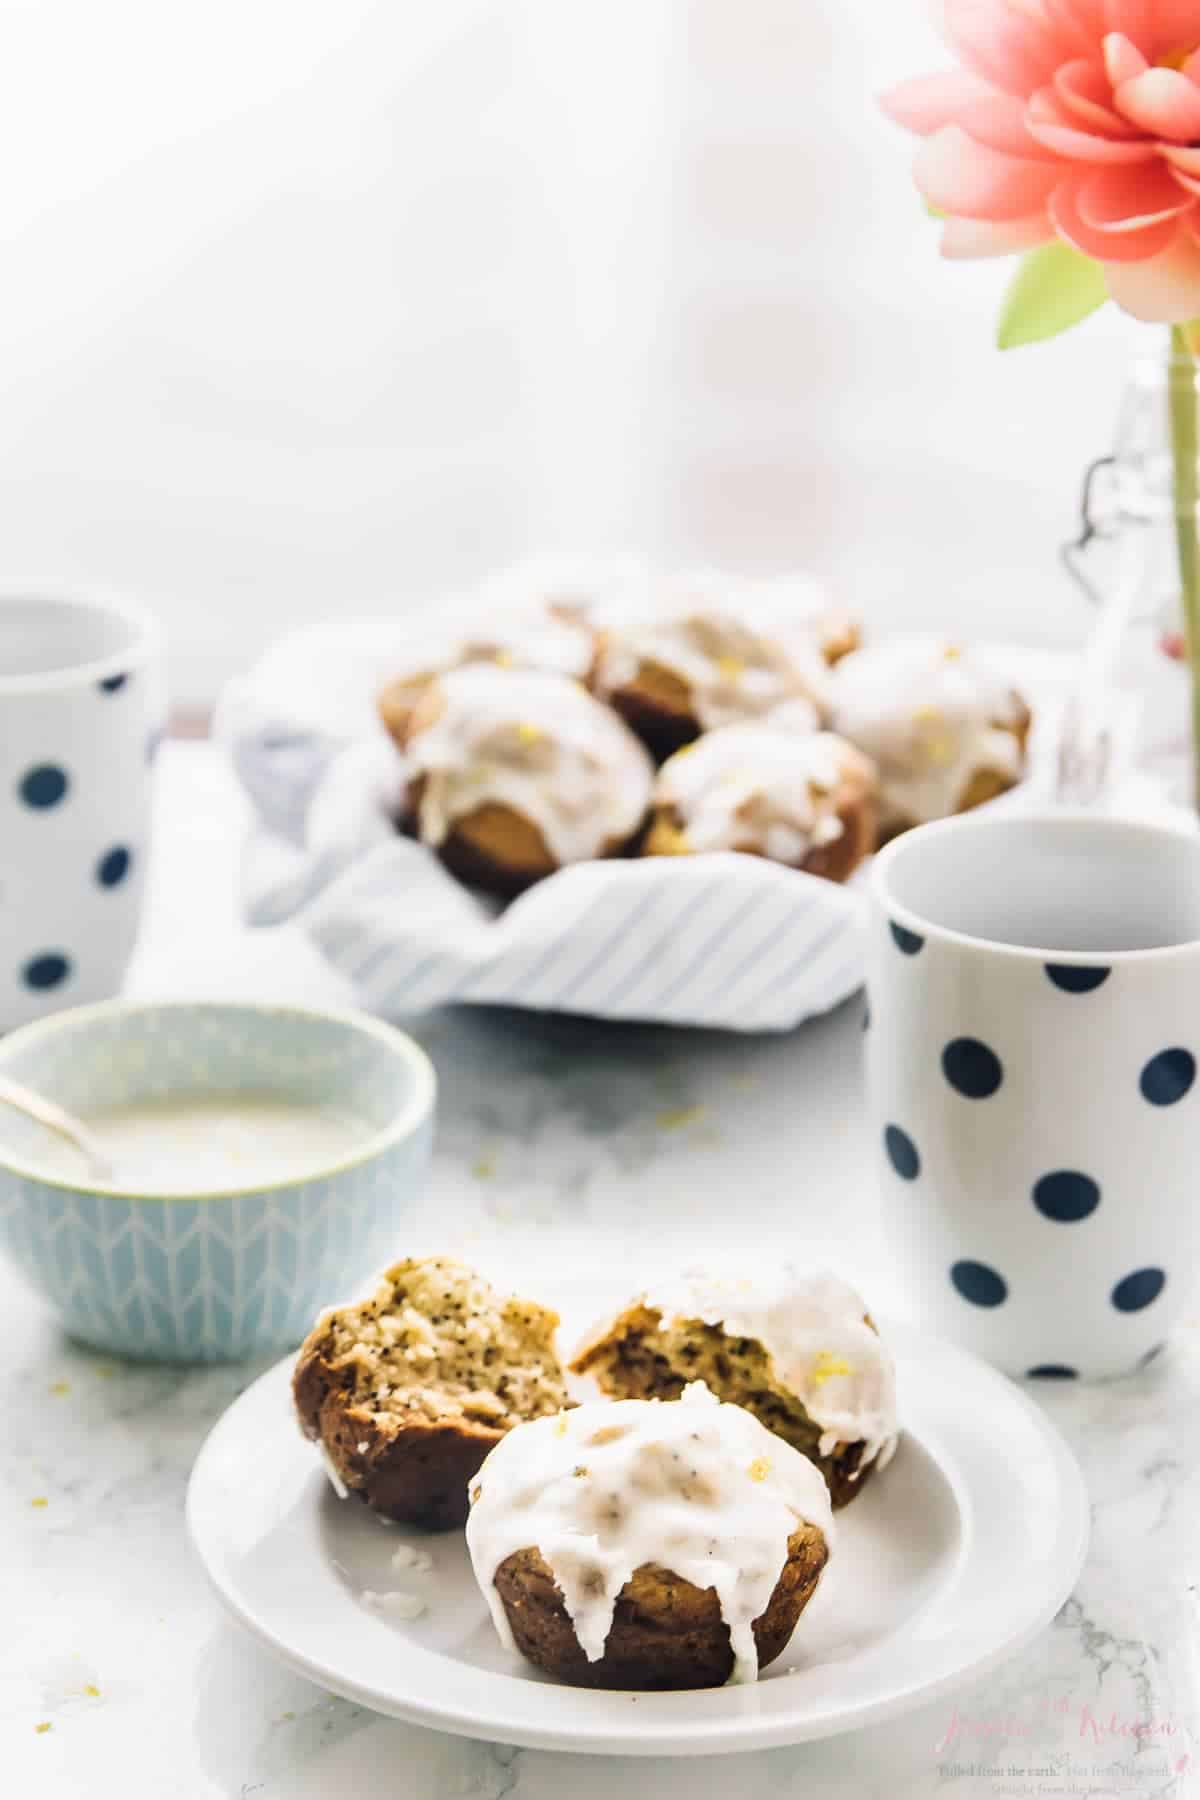 These Lemon Poppyseed Muffins are perfect for Spring & Mother's Day! They are so fluffy, filled with lemon flavour and are vegan and gluten free! via https://jessicainthekitchen.com